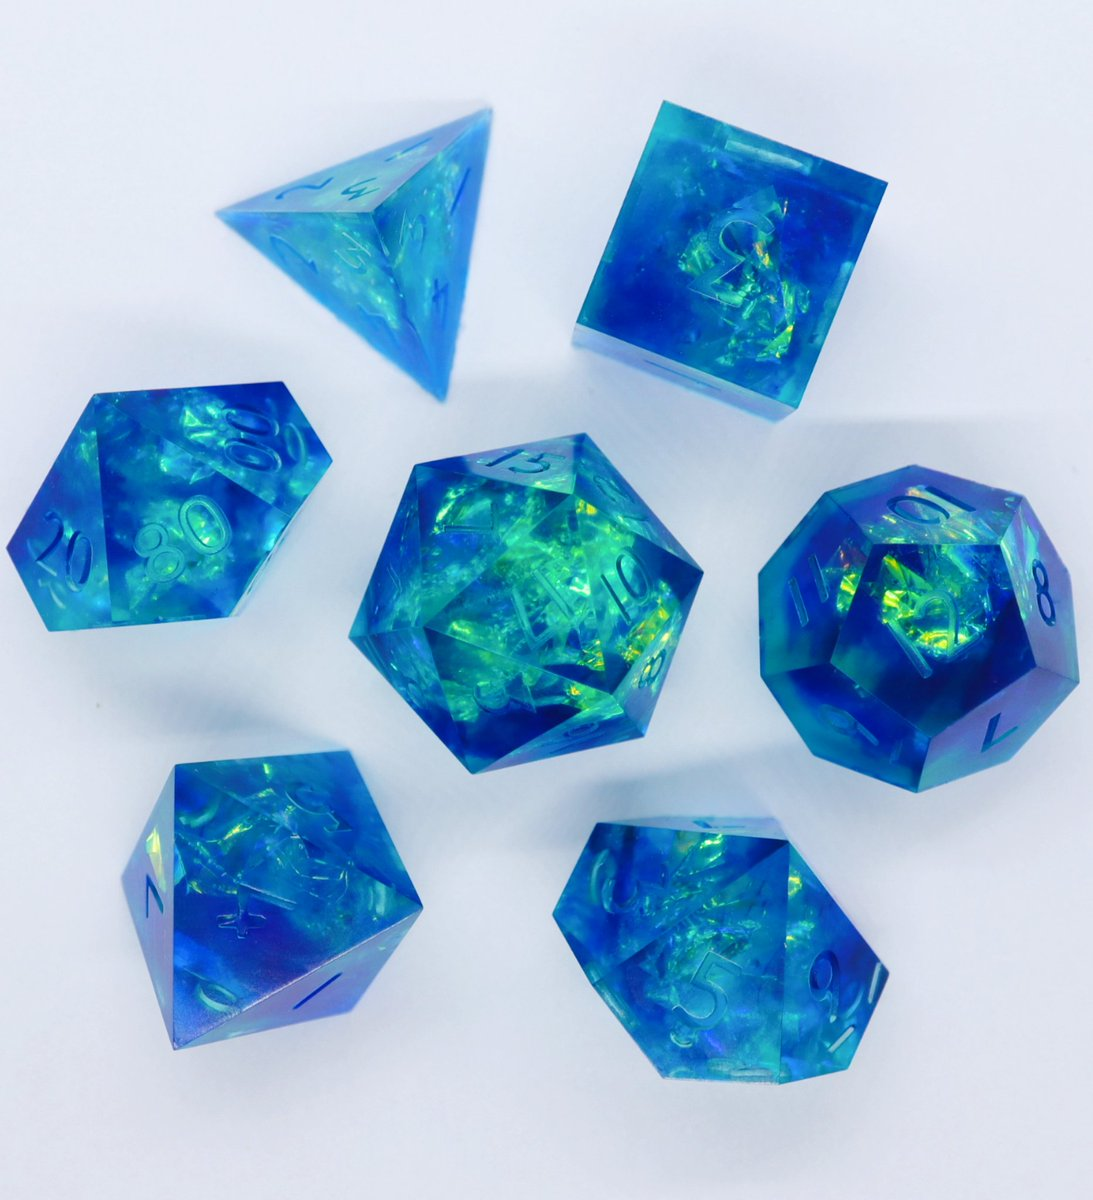 Cerulean Sea  my attempt at some #mermay-themed dice!  #dnd #dnd5e #dungeonsanddragons #ttrpg #dice<br>http://pic.twitter.com/DKz6OgPBYR